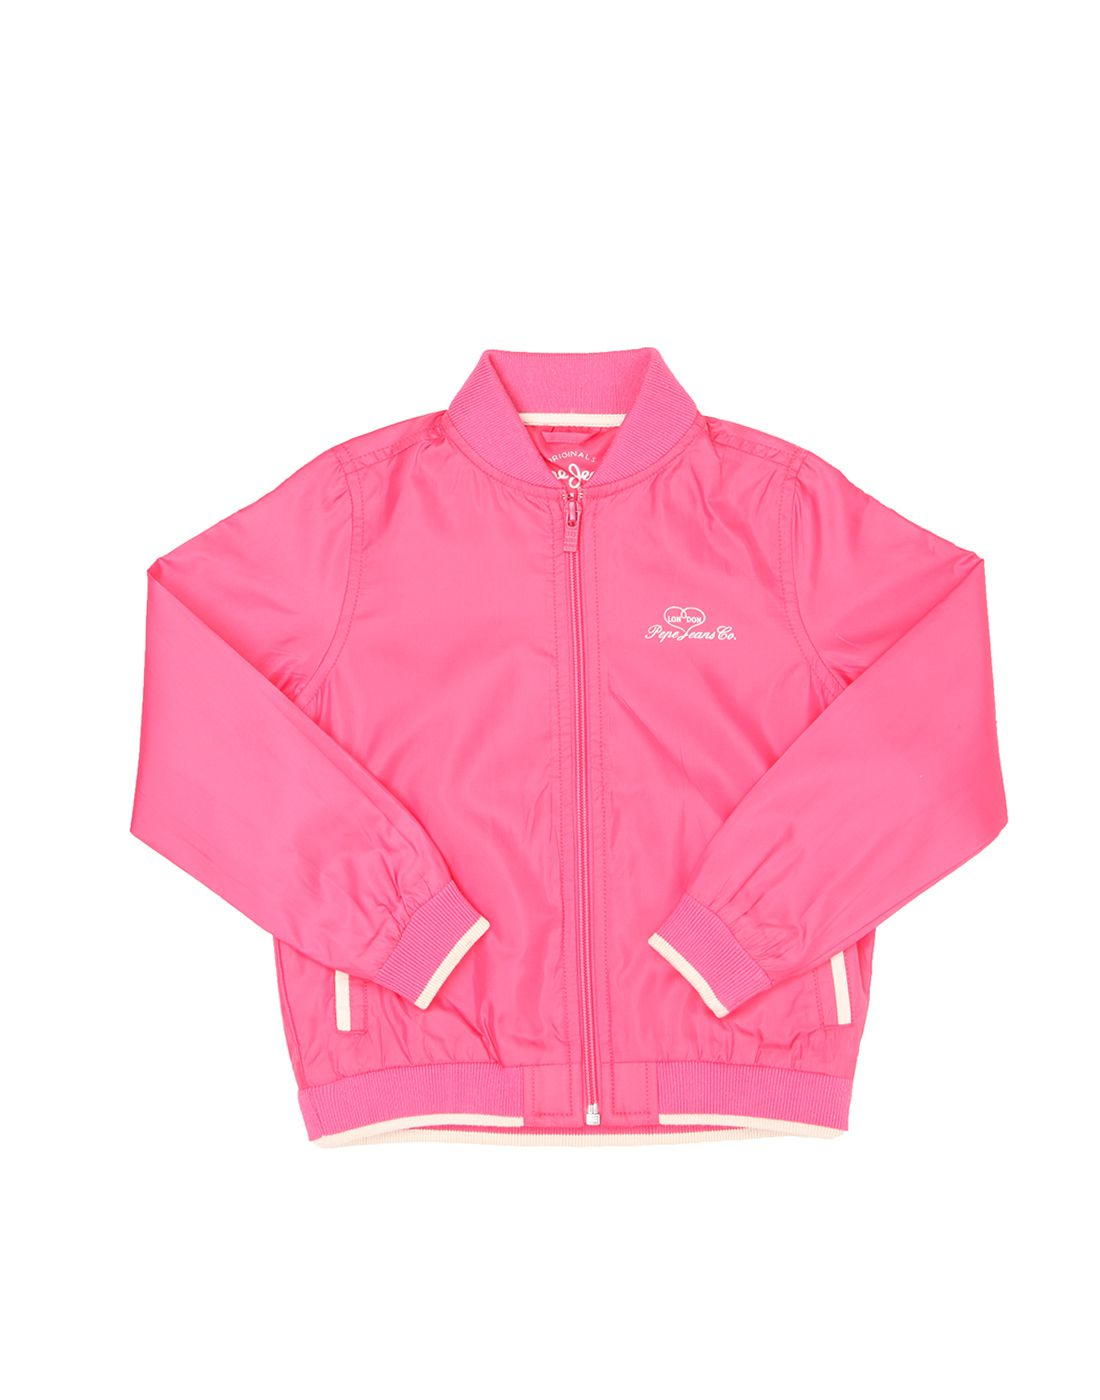 Pepe Jeans Girls Full Sleeve Casual Pink Jacket